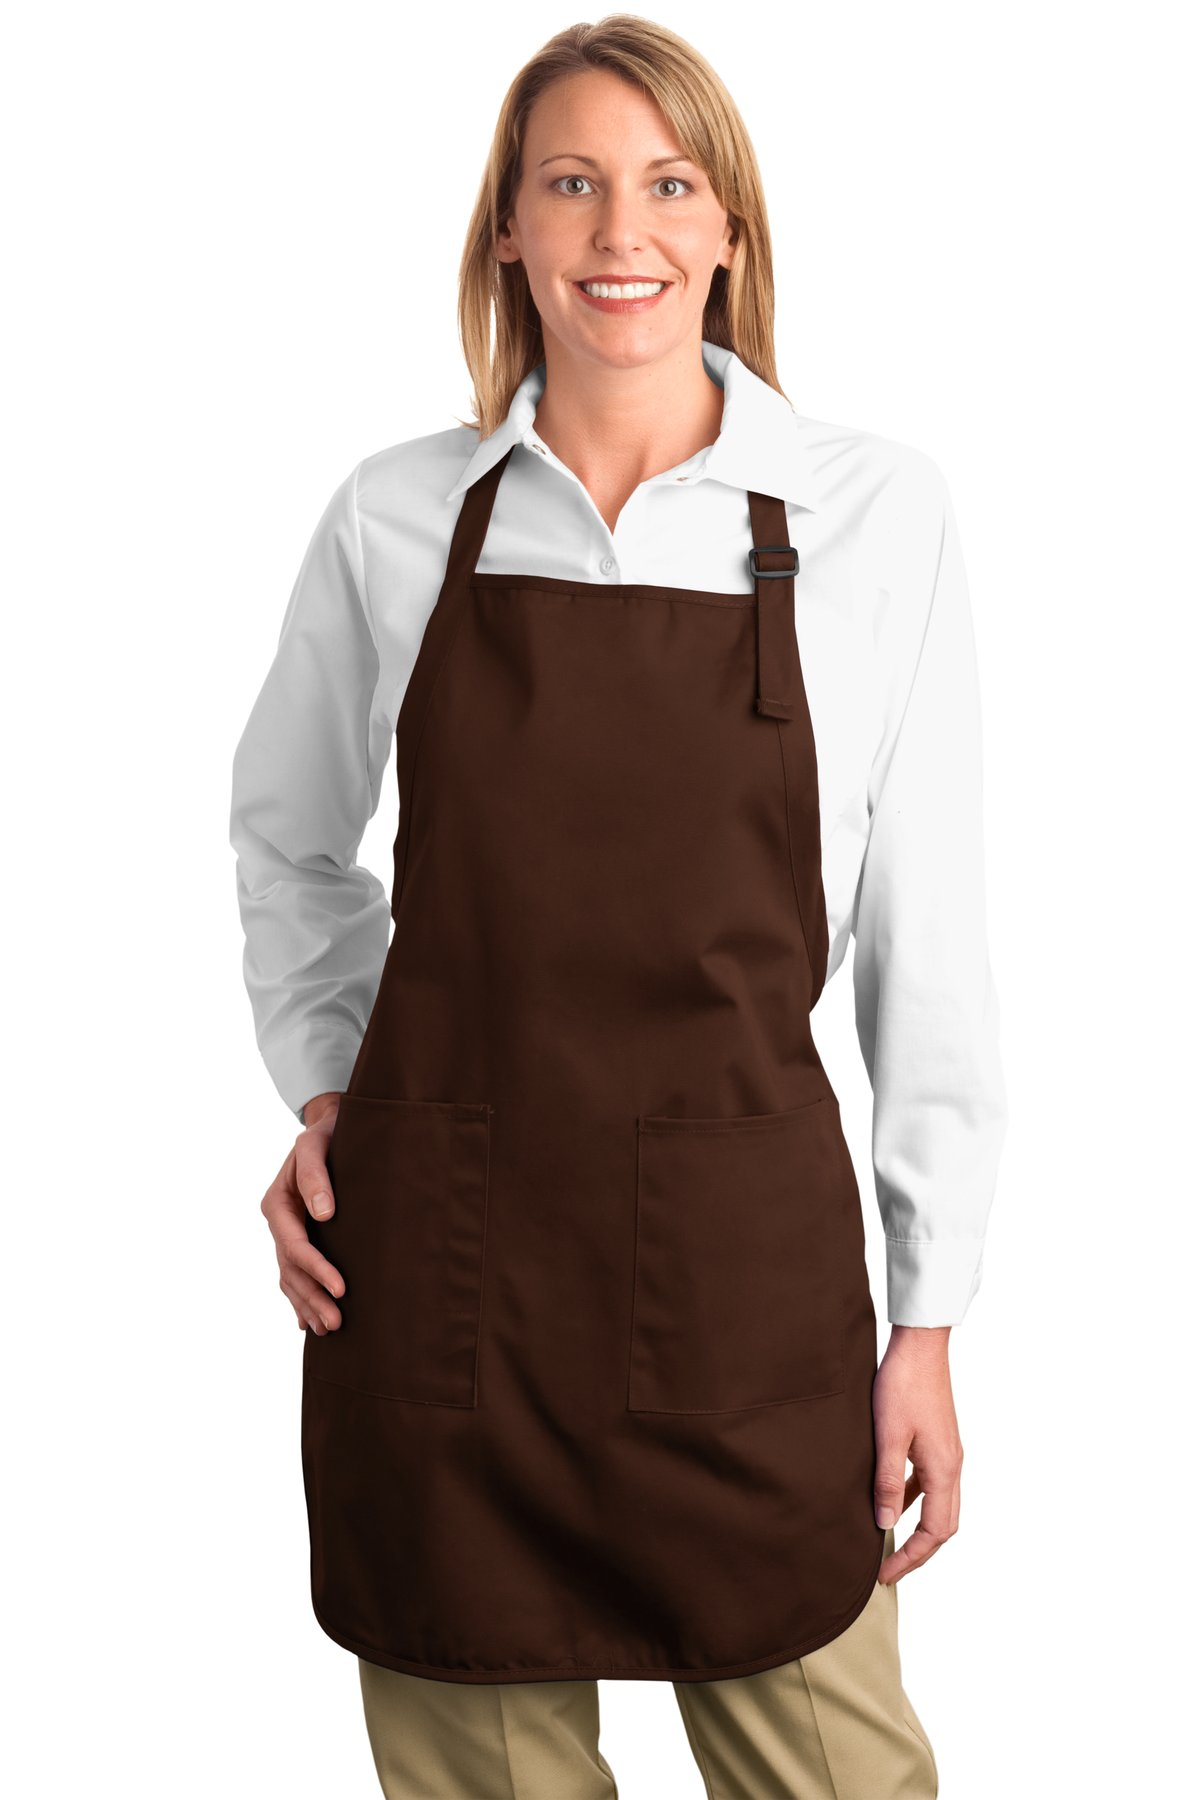 Port Authority ®  Full-Length Apron with Pockets.  A500 - Coffee Bean